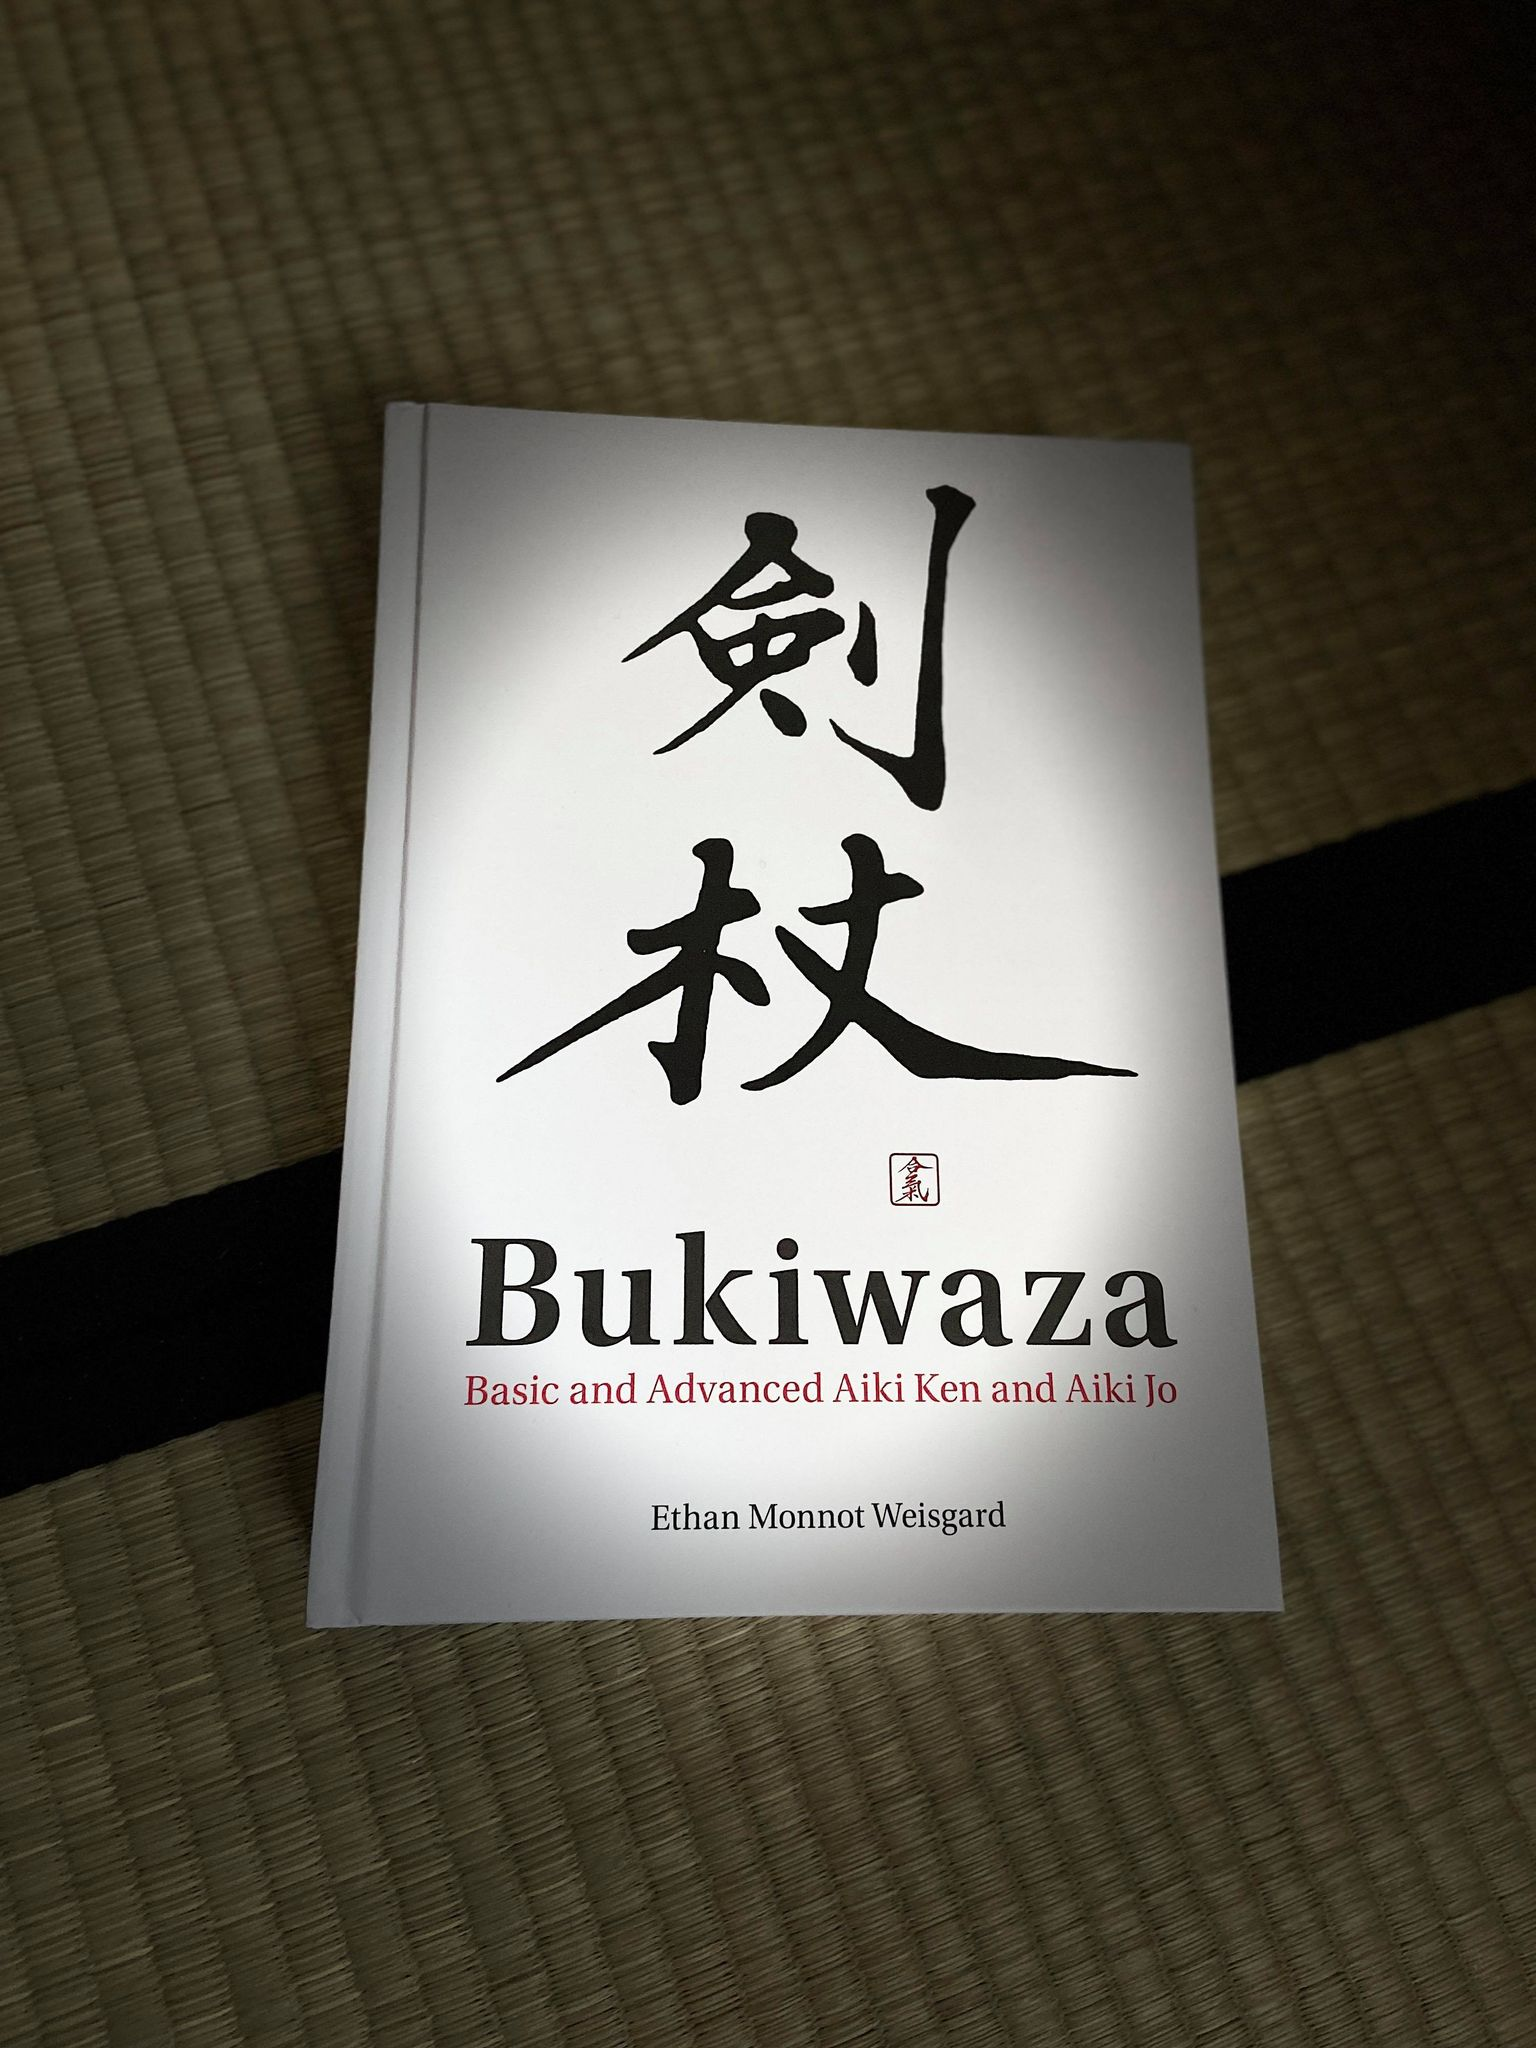 Special New Edition of Bukiwaza – Basic and Advanced Aiki Ken and Aiki Jo